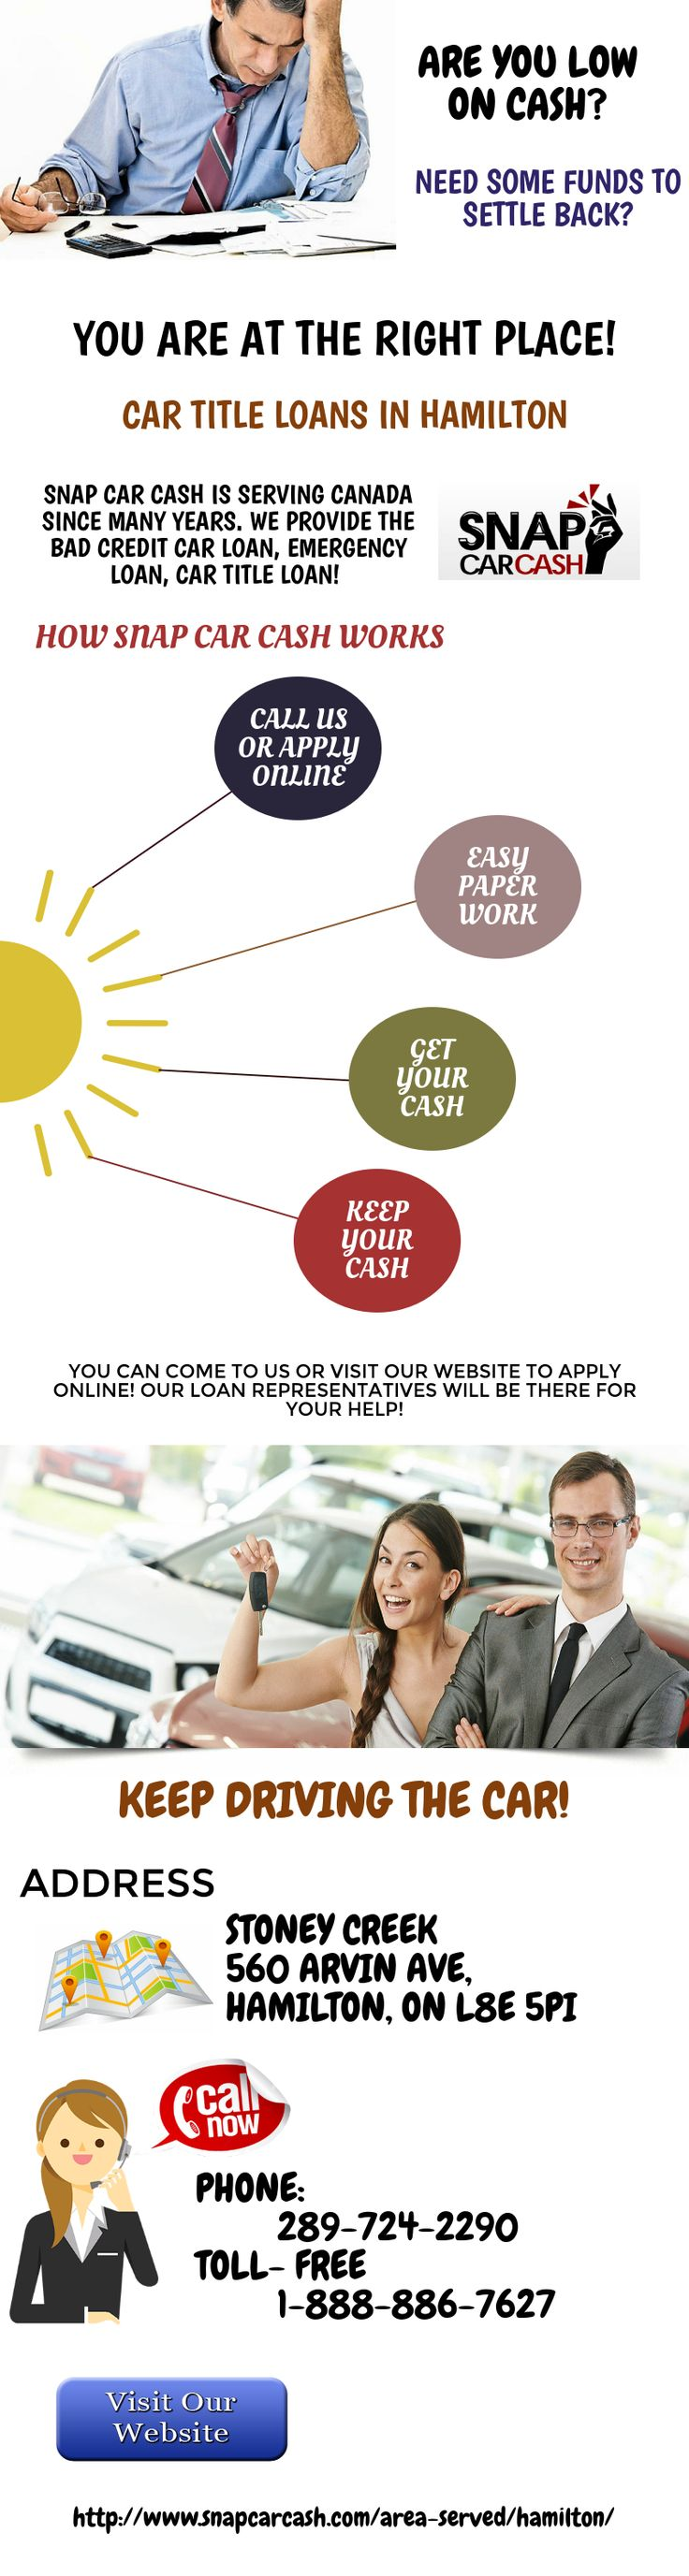 With snap car cash you will be able to get a loan amount of up to